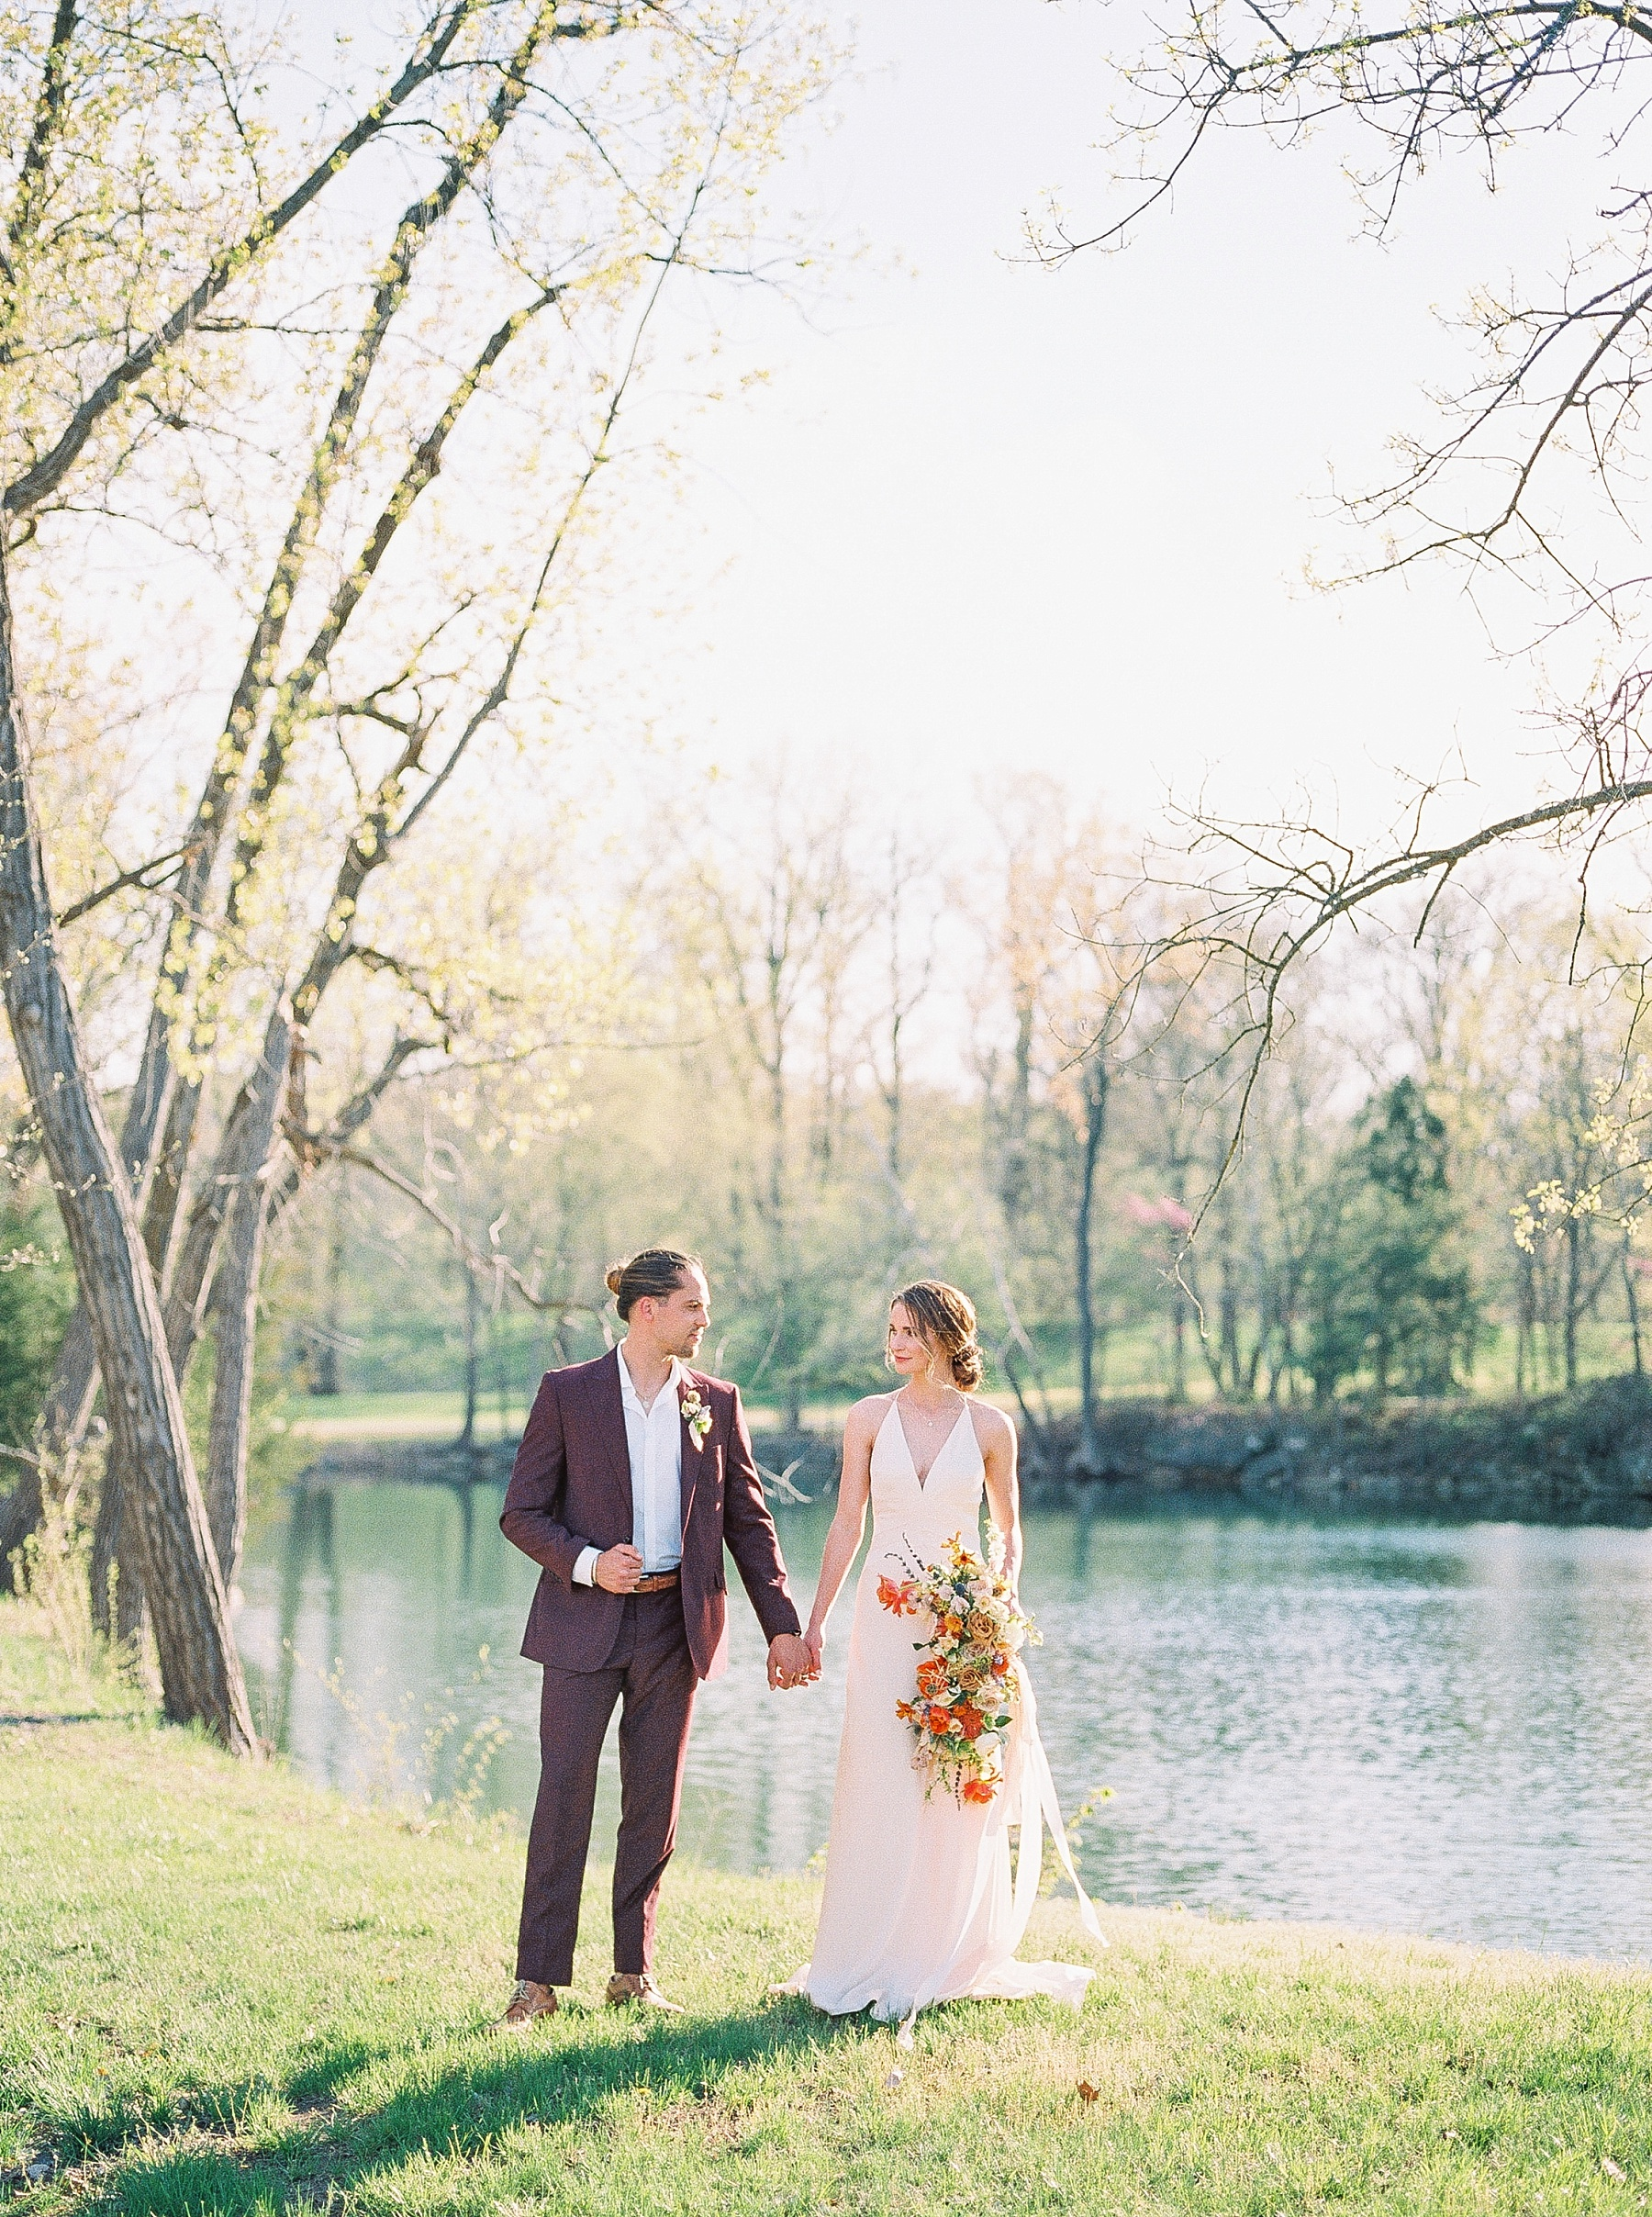 Intimate Spanish and French Inspired Destination Wedding with Lakeside Dinner Party at Dusk at Wildcliff by Kelsi Kliethermes Photography Best Missouri and Maui Wedding Photographer_0072.jpg